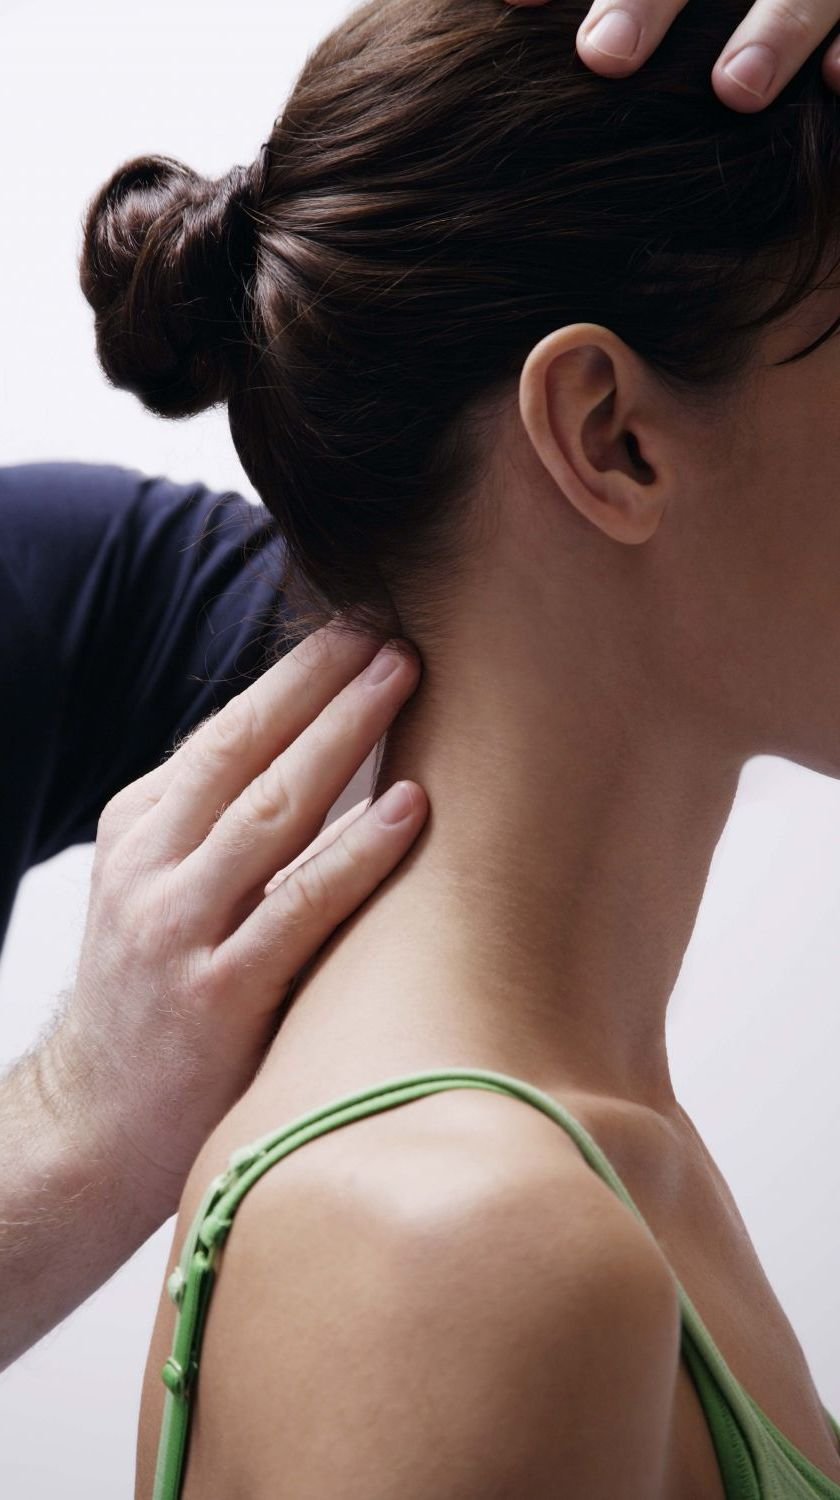 Osteopathic treatment in Dunedin